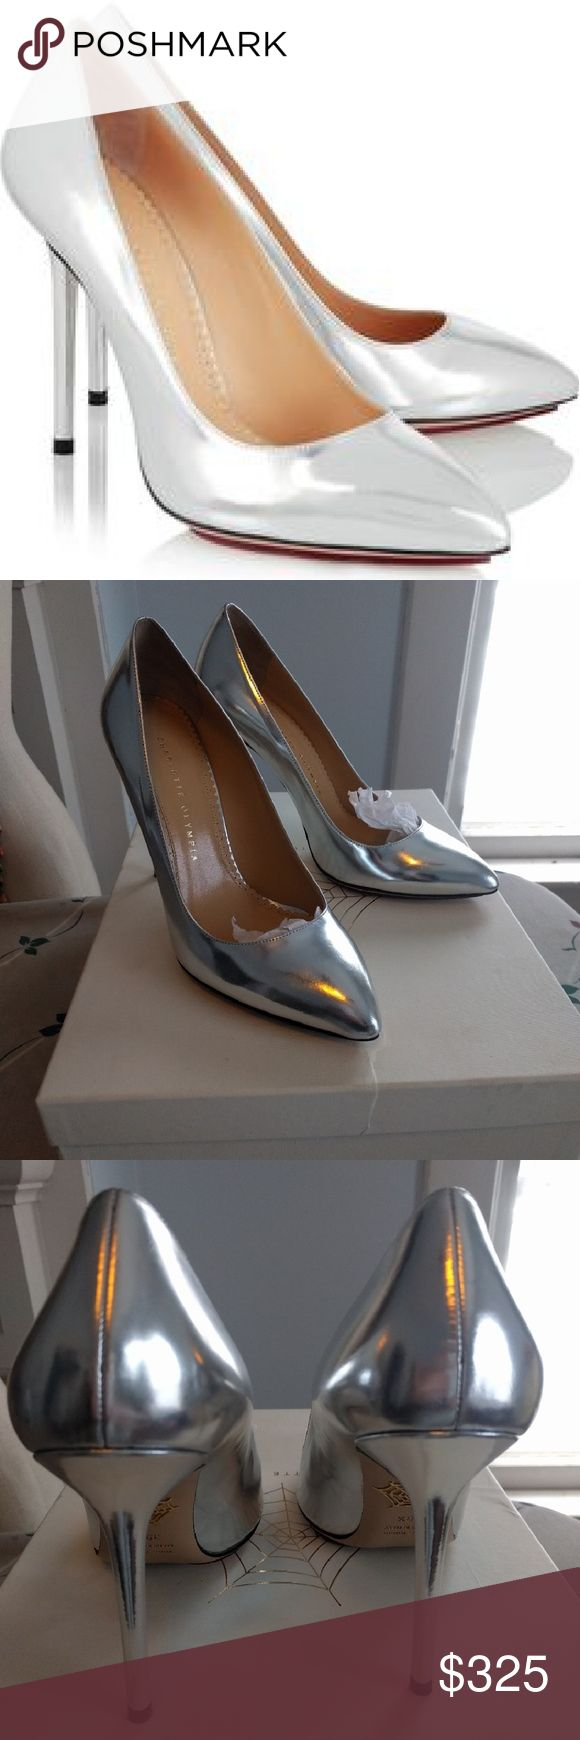 Charlotte Olympia Monroe metallic leather pumps Charlotte Olympia Monroe metallic leather pumps, silver metallic calf, size Italian/eur 39.5, equivalent to size US 9.5. heel is 4.5 inches with .25 island platform.  These run true to size and I would keep but unfortunately I am a size 10. Used just one time for photo shoot. Some dents on bottom leather sole but other than that in excellent condition! Hard to find online and sold out on netaporter. Purchased for full price. Comes w/ orig…